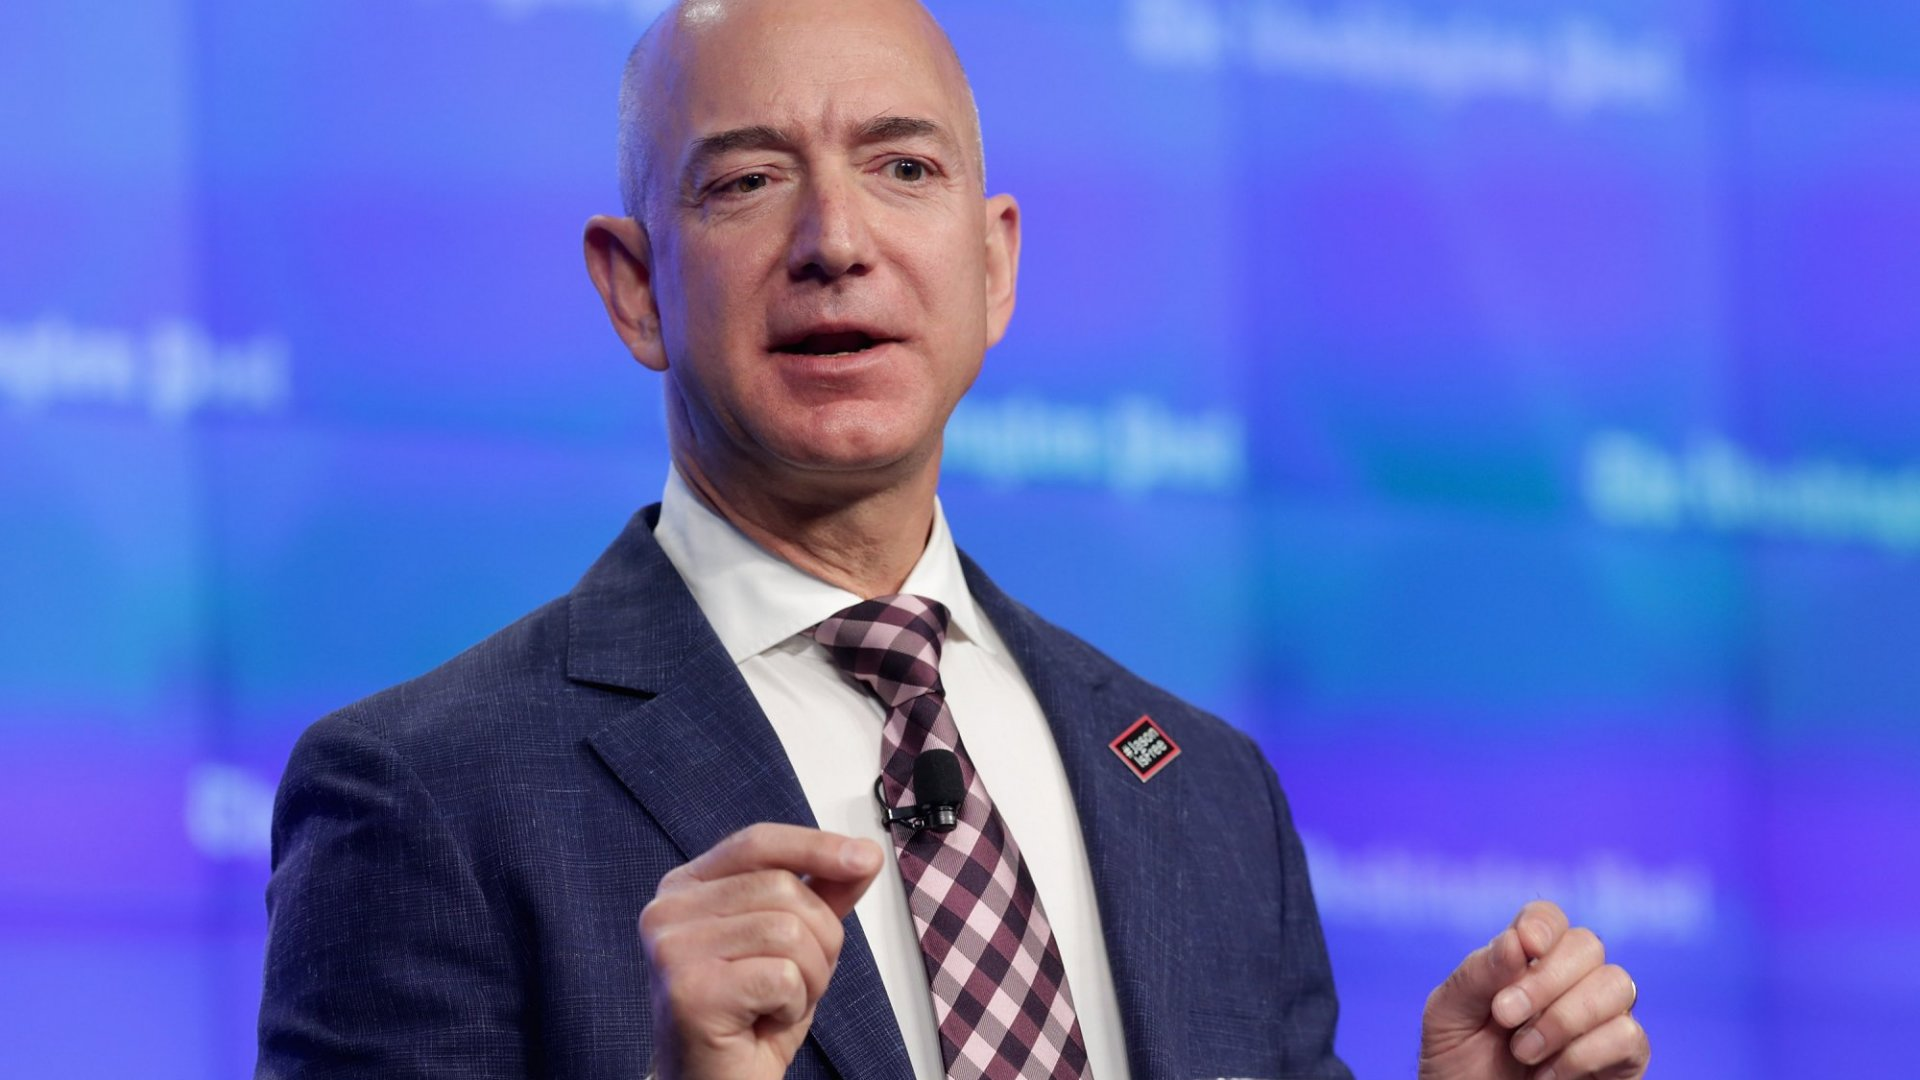 Jeff Bezos Just Explained How to Achieve Customer Loyalty in Only 1 Sentence